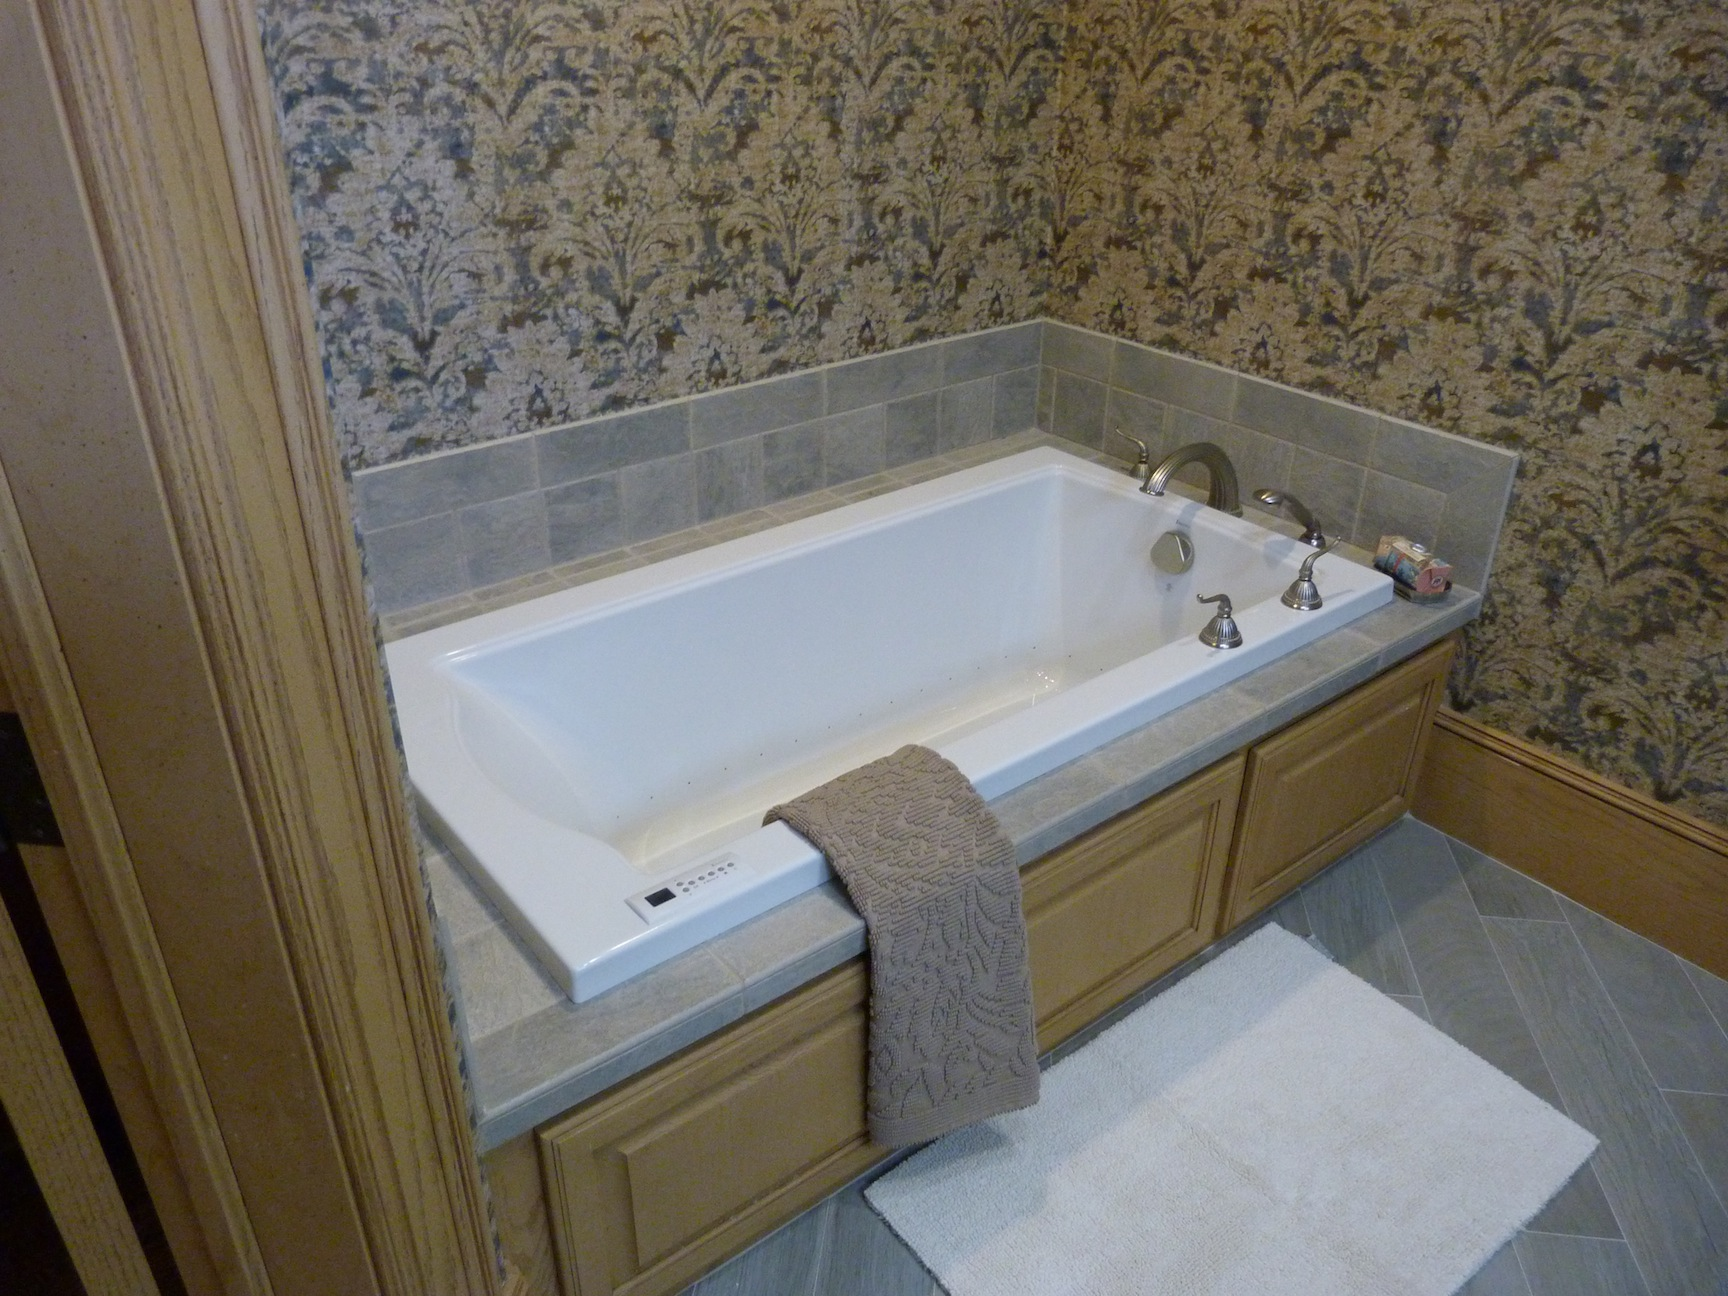 Bathroom Remodeling Okc bathroom remodeling oklahoma city : majestic construction